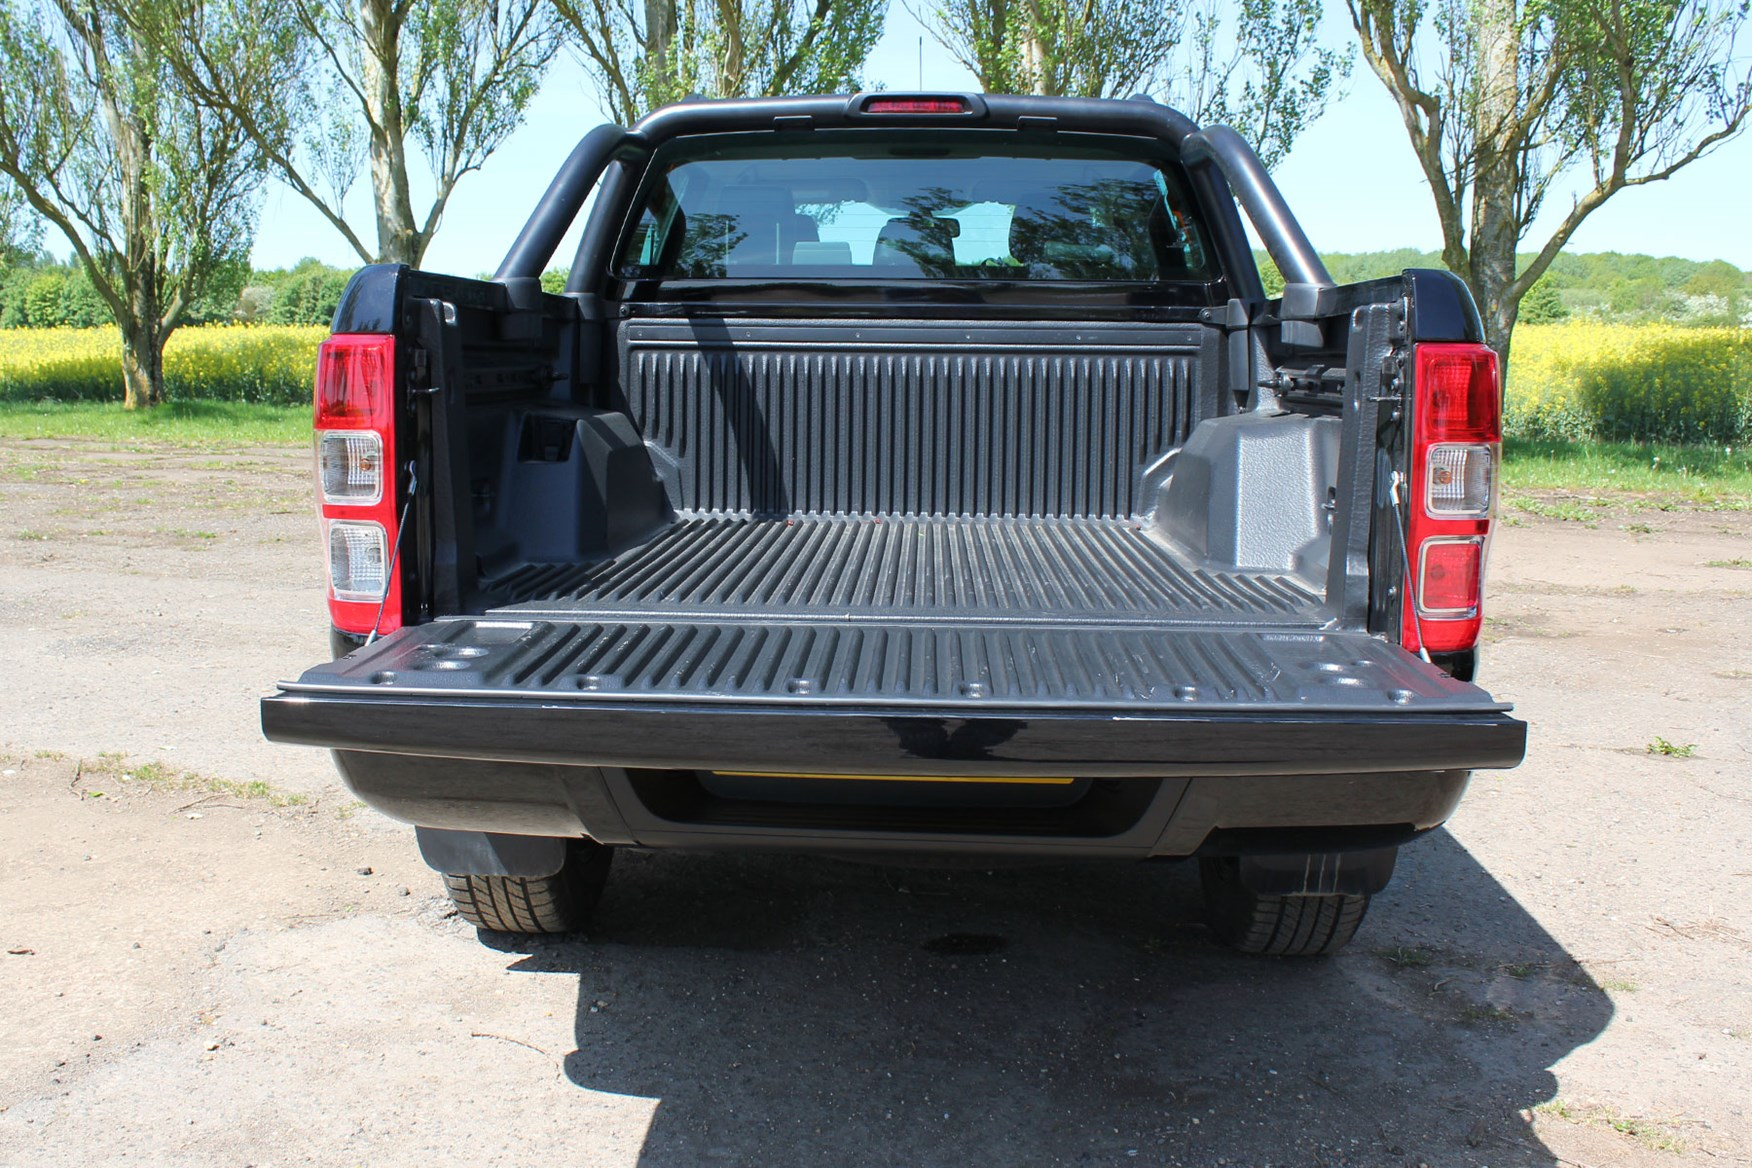 Ford Ranger Black Edition review - load bed area